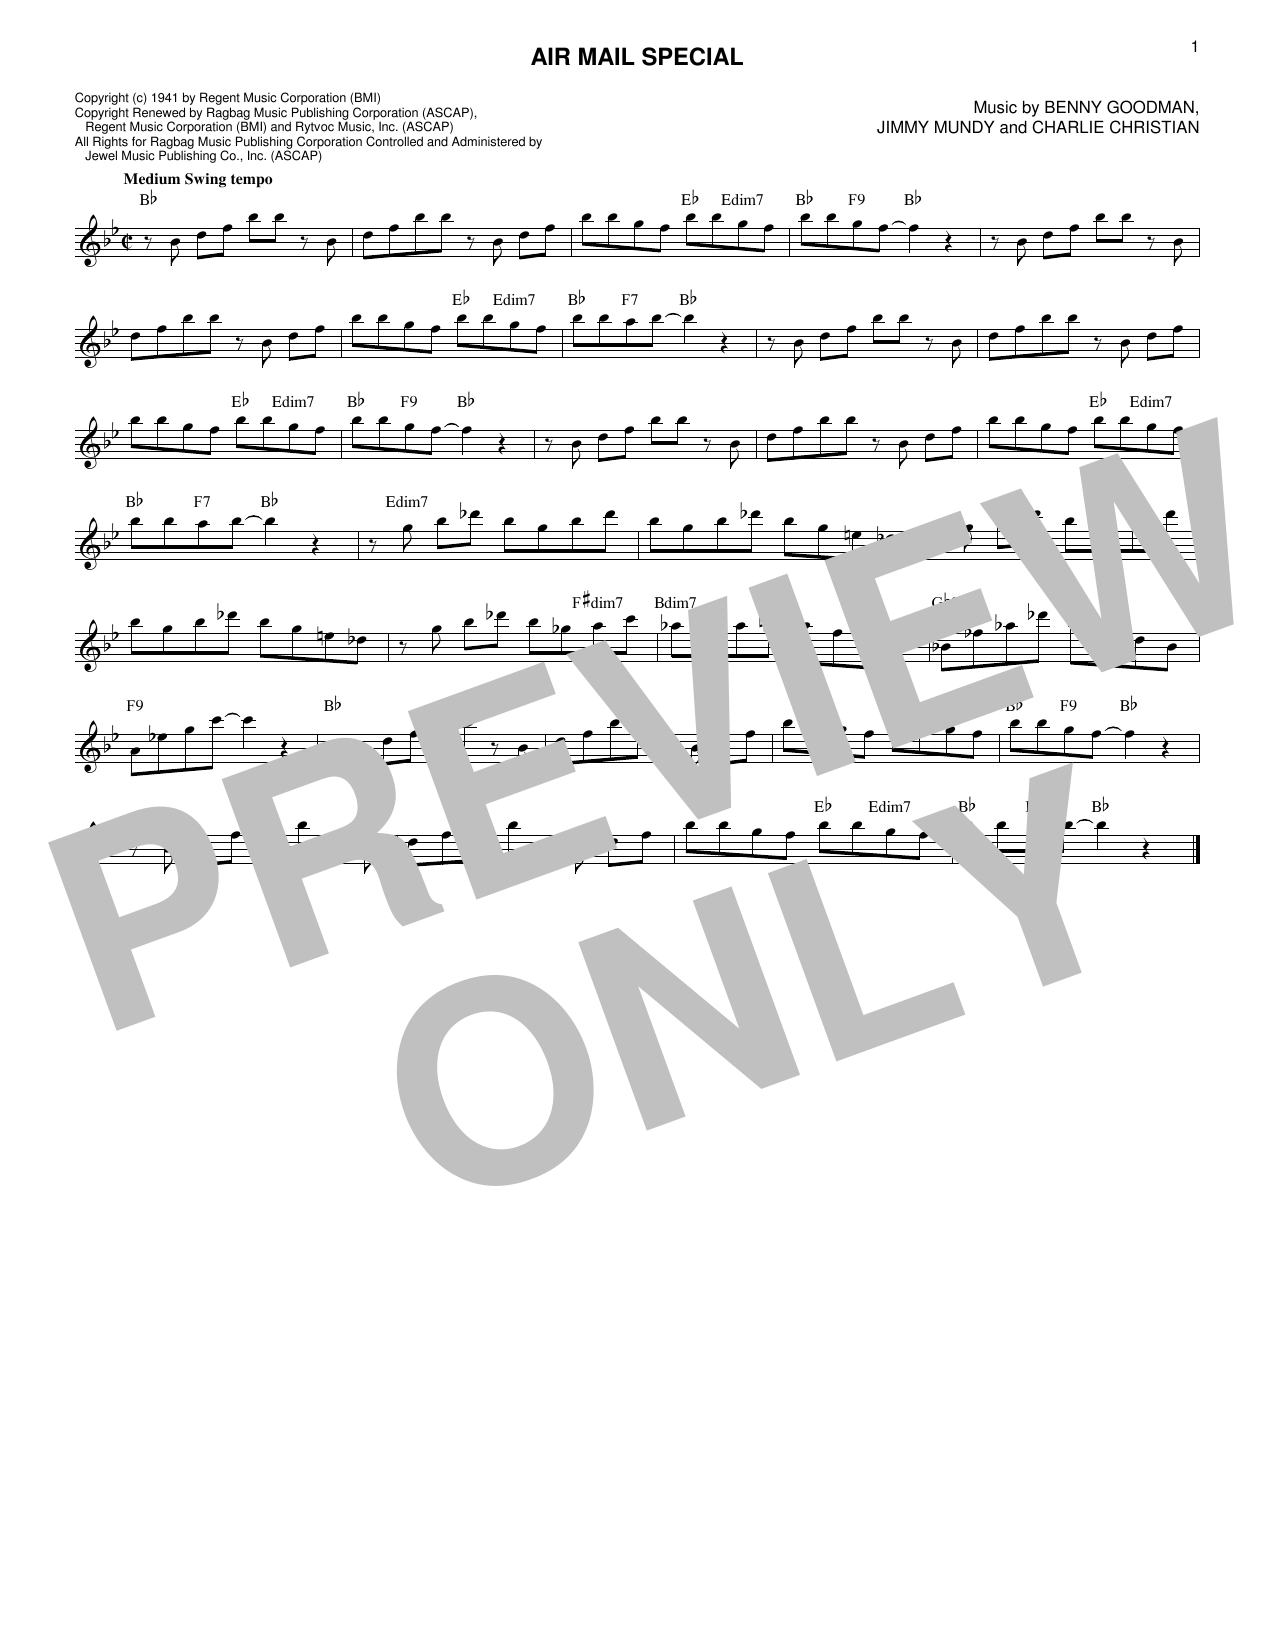 Benny Goodman & His Orchestra Air Mail Special sheet music notes and chords. Download Printable PDF.